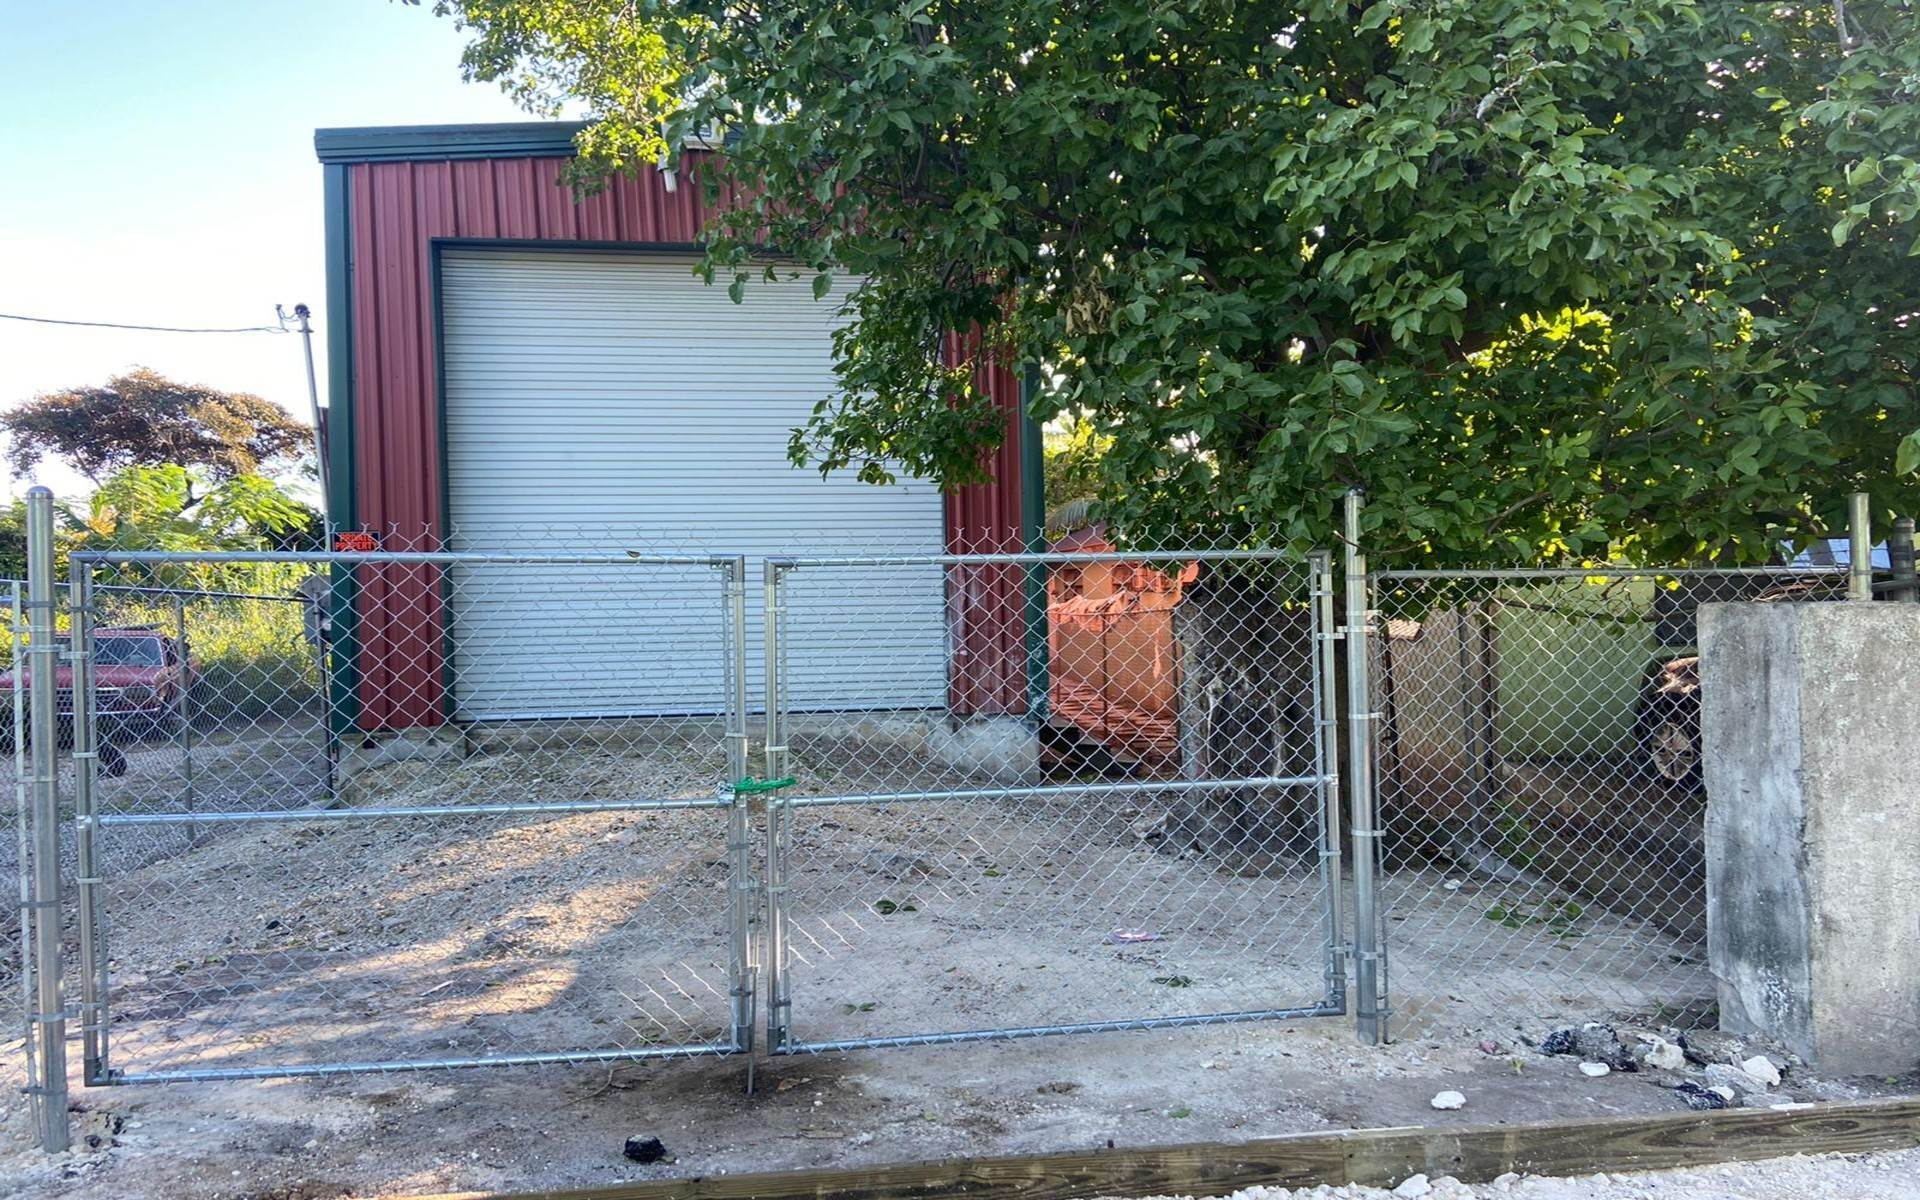 Commercial for Rent at Rental Storage Facility in Mason's Addition - MLS 42894 Centreville, Nassau And Paradise Island, Bahamas